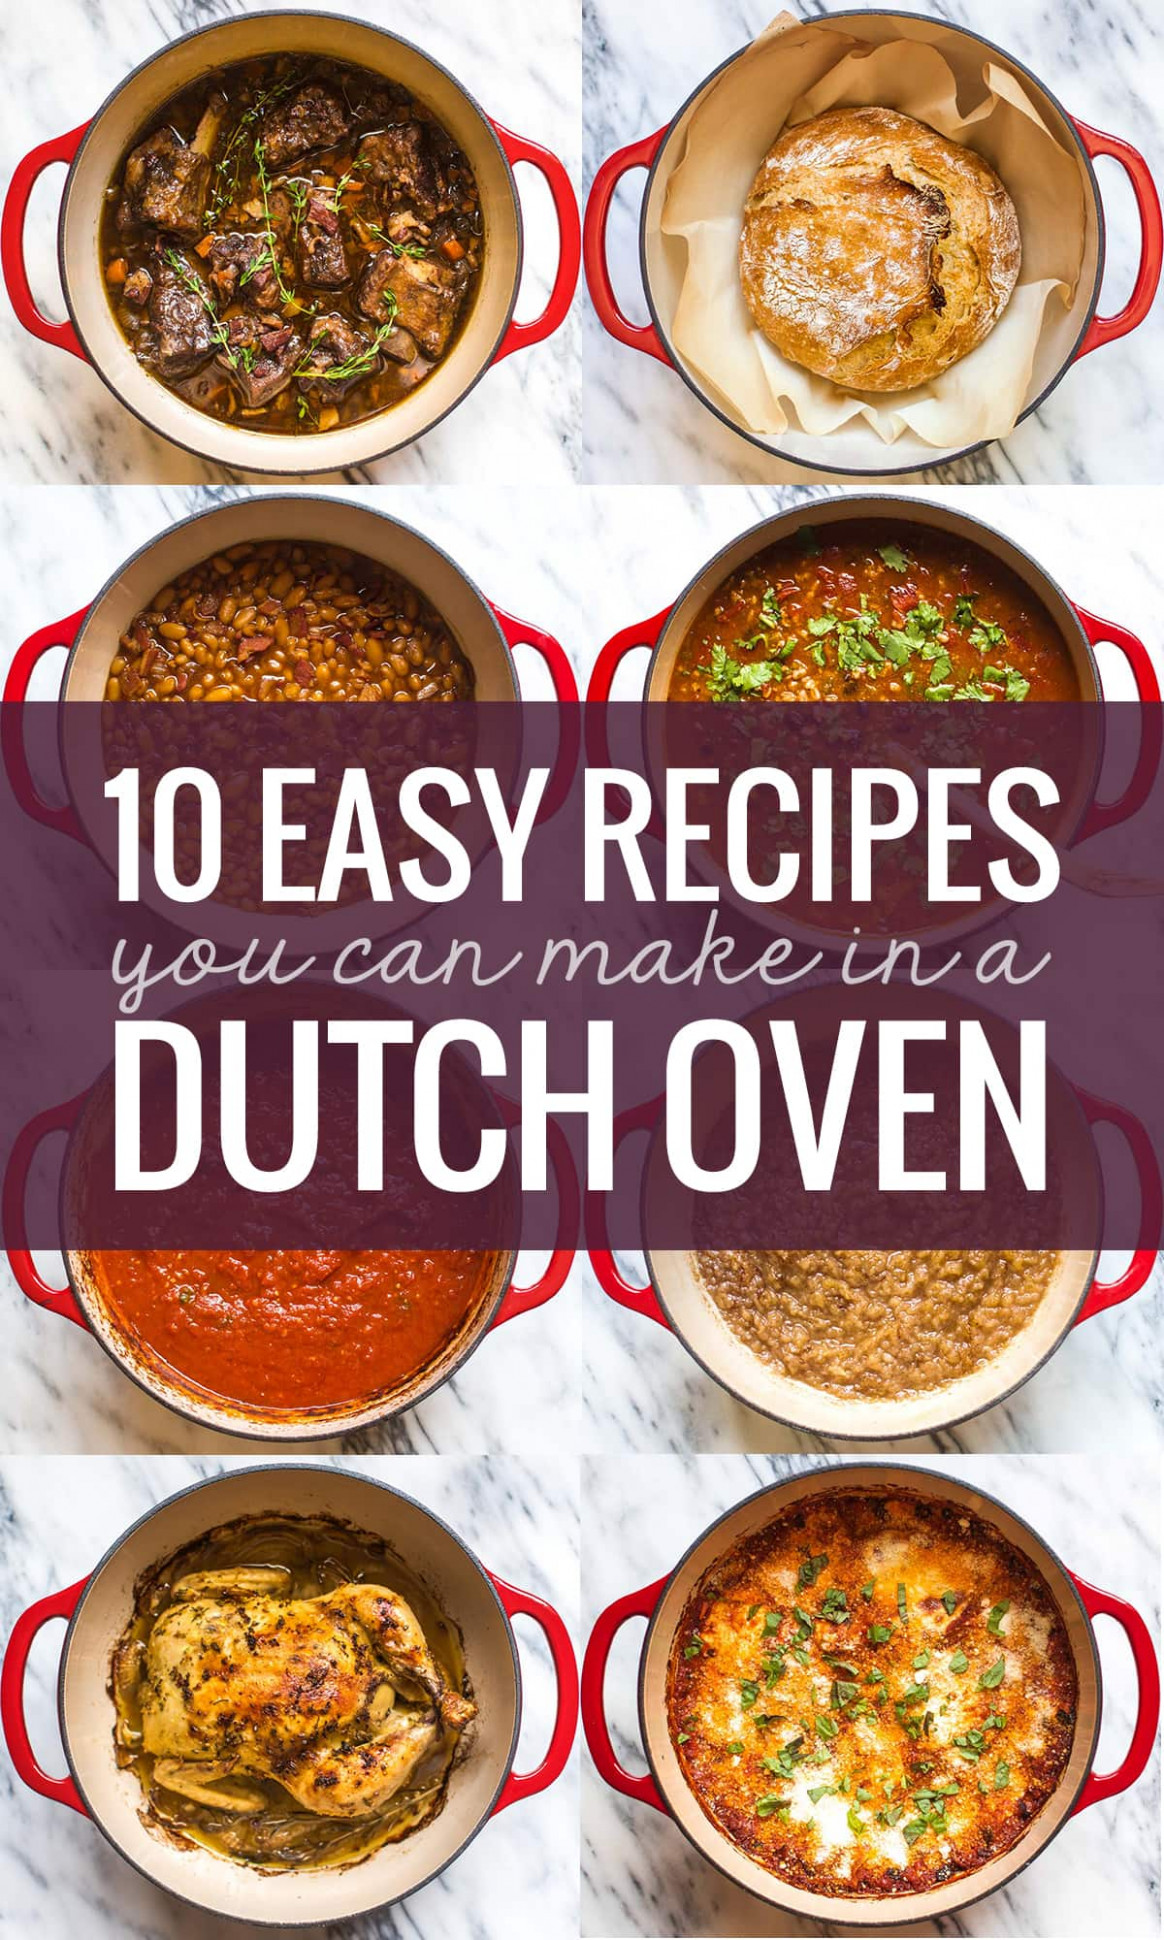 15 Easy Recipes You Can Make in a Dutch Oven - Pinch of Yum - dinner recipes top rated